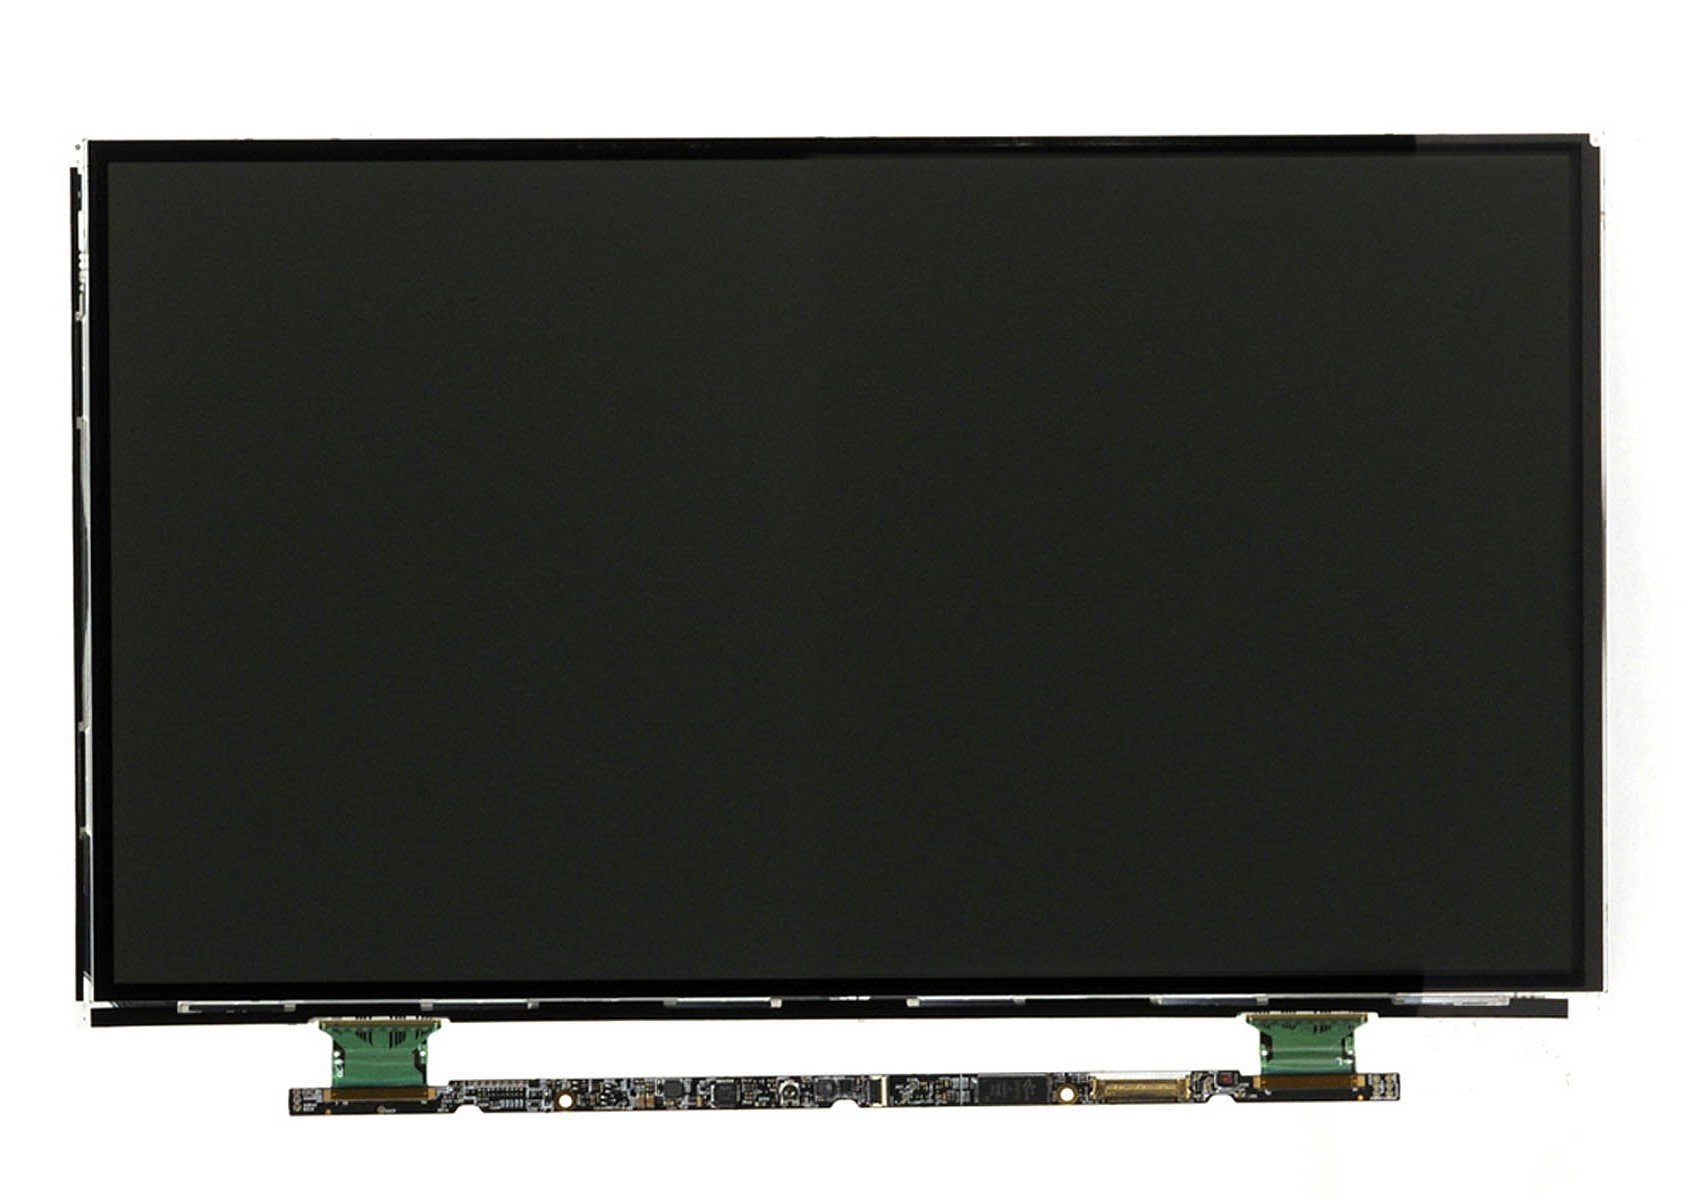 New Apple MacBook Air A1370 WXGA 11.6'' LED LCD Screen GLOSSY B116XW05 V.0, LTH116AT01-A01, LP116WH4 (TP)(A1) & LP116WH4 (TJ)(A1) (compatible replacement screen)